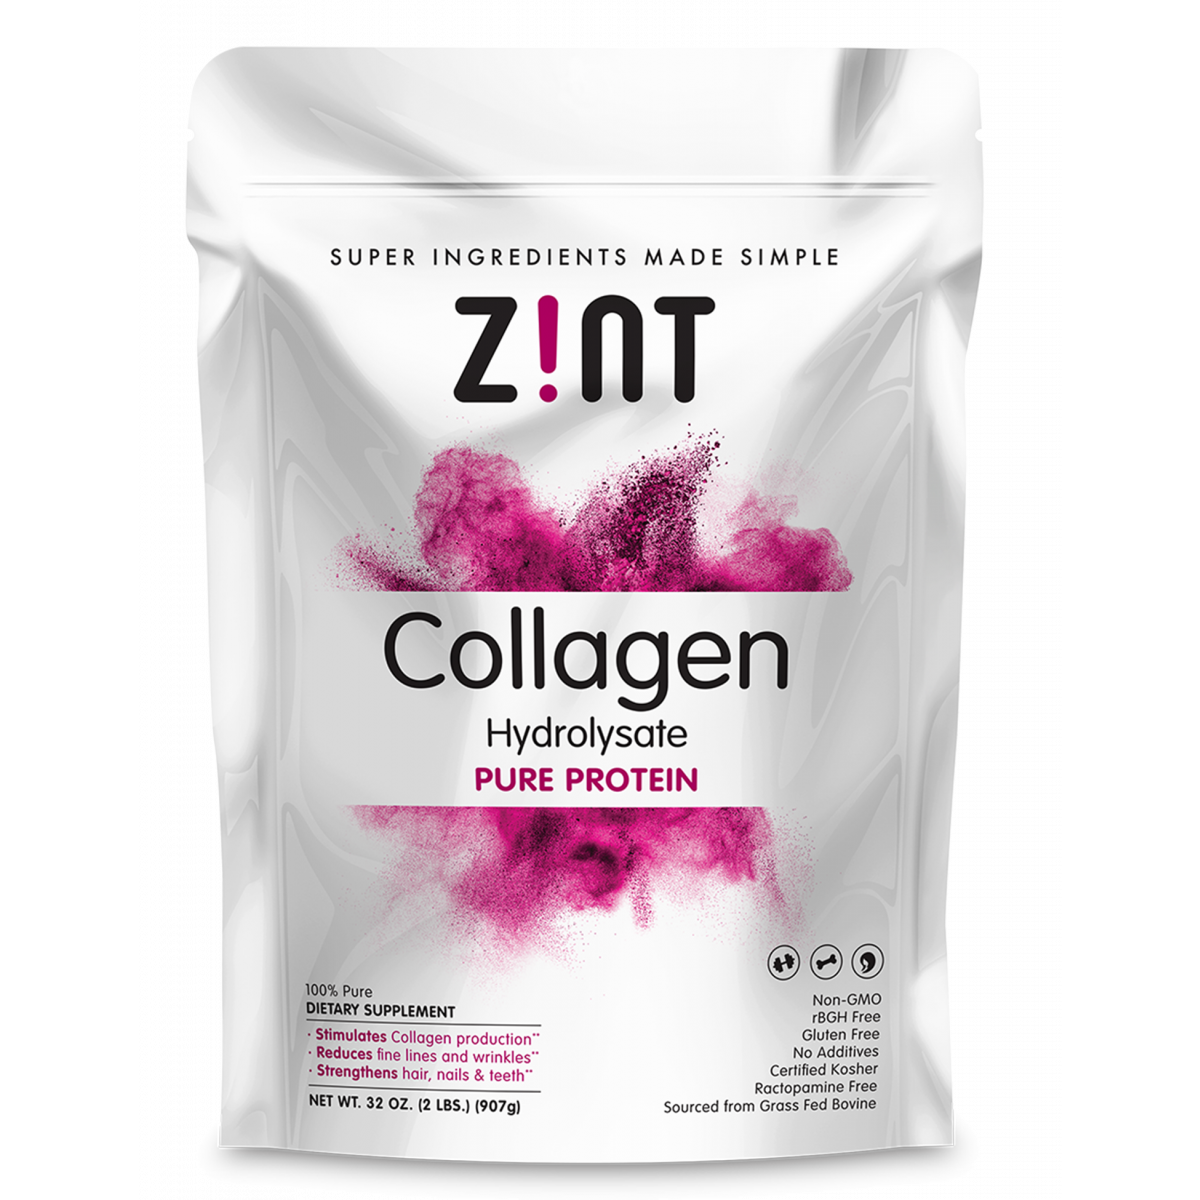 Grass-Fed Beef Collagen Hydrolyzed for optimal absorption. Collagen benefits the foundation of bulding blocks enhancing skin, hair, connective tissue and joint health..